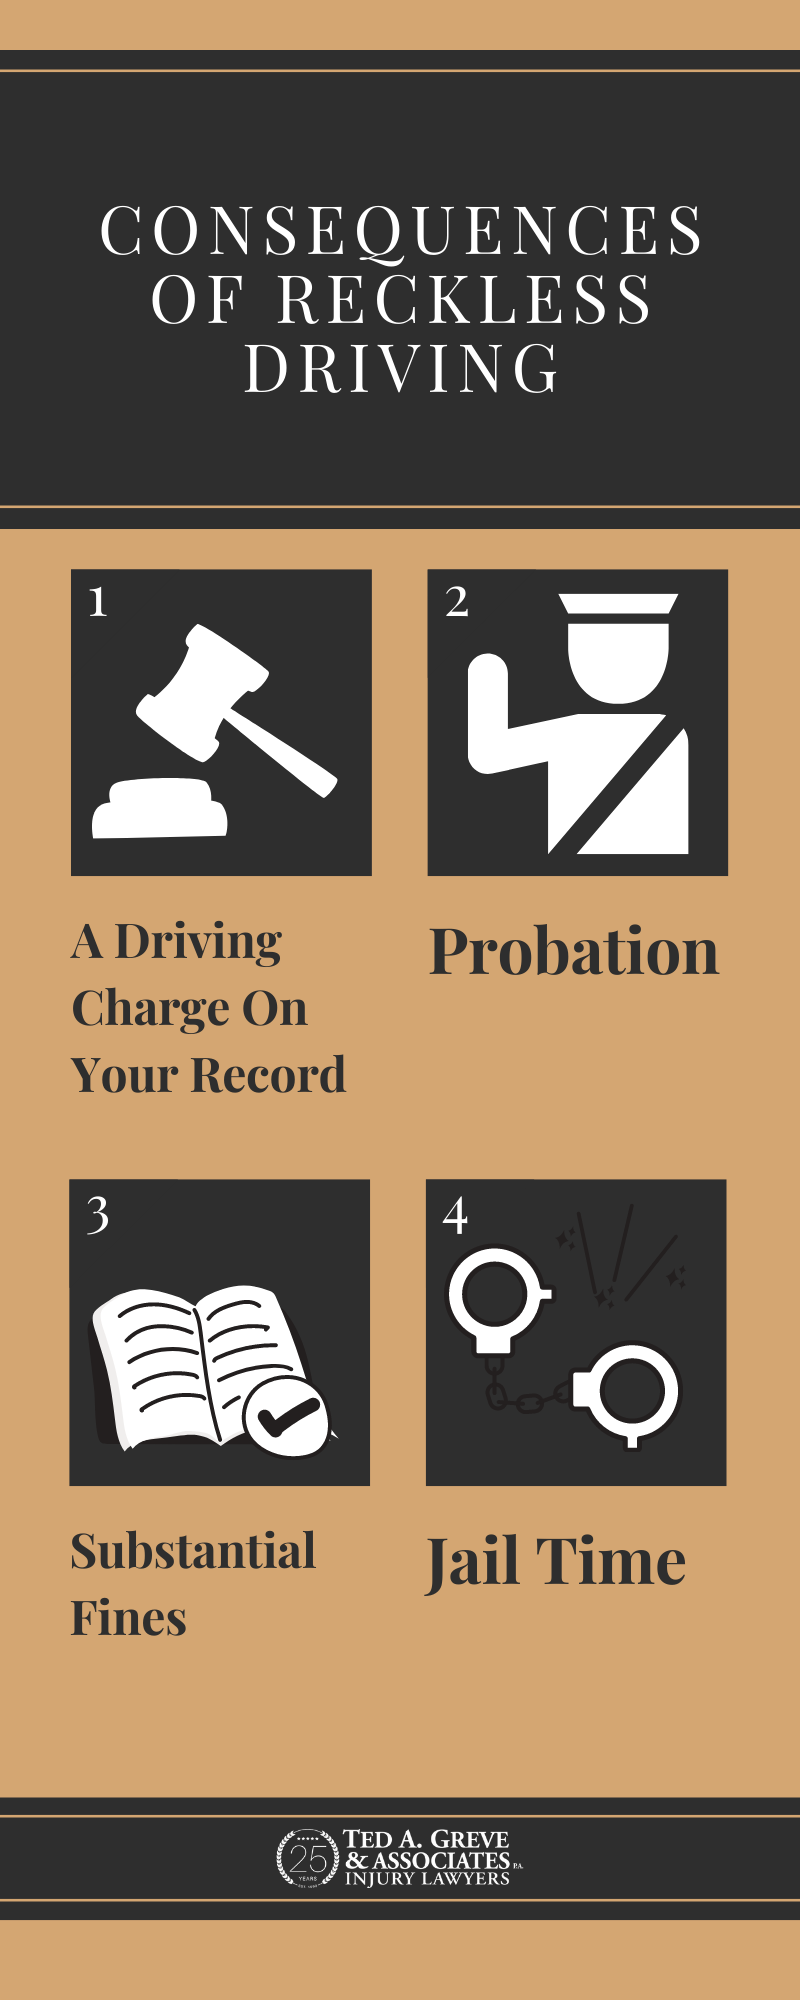 Ted Greve Atlanta Reckless Driving Accident Infographic